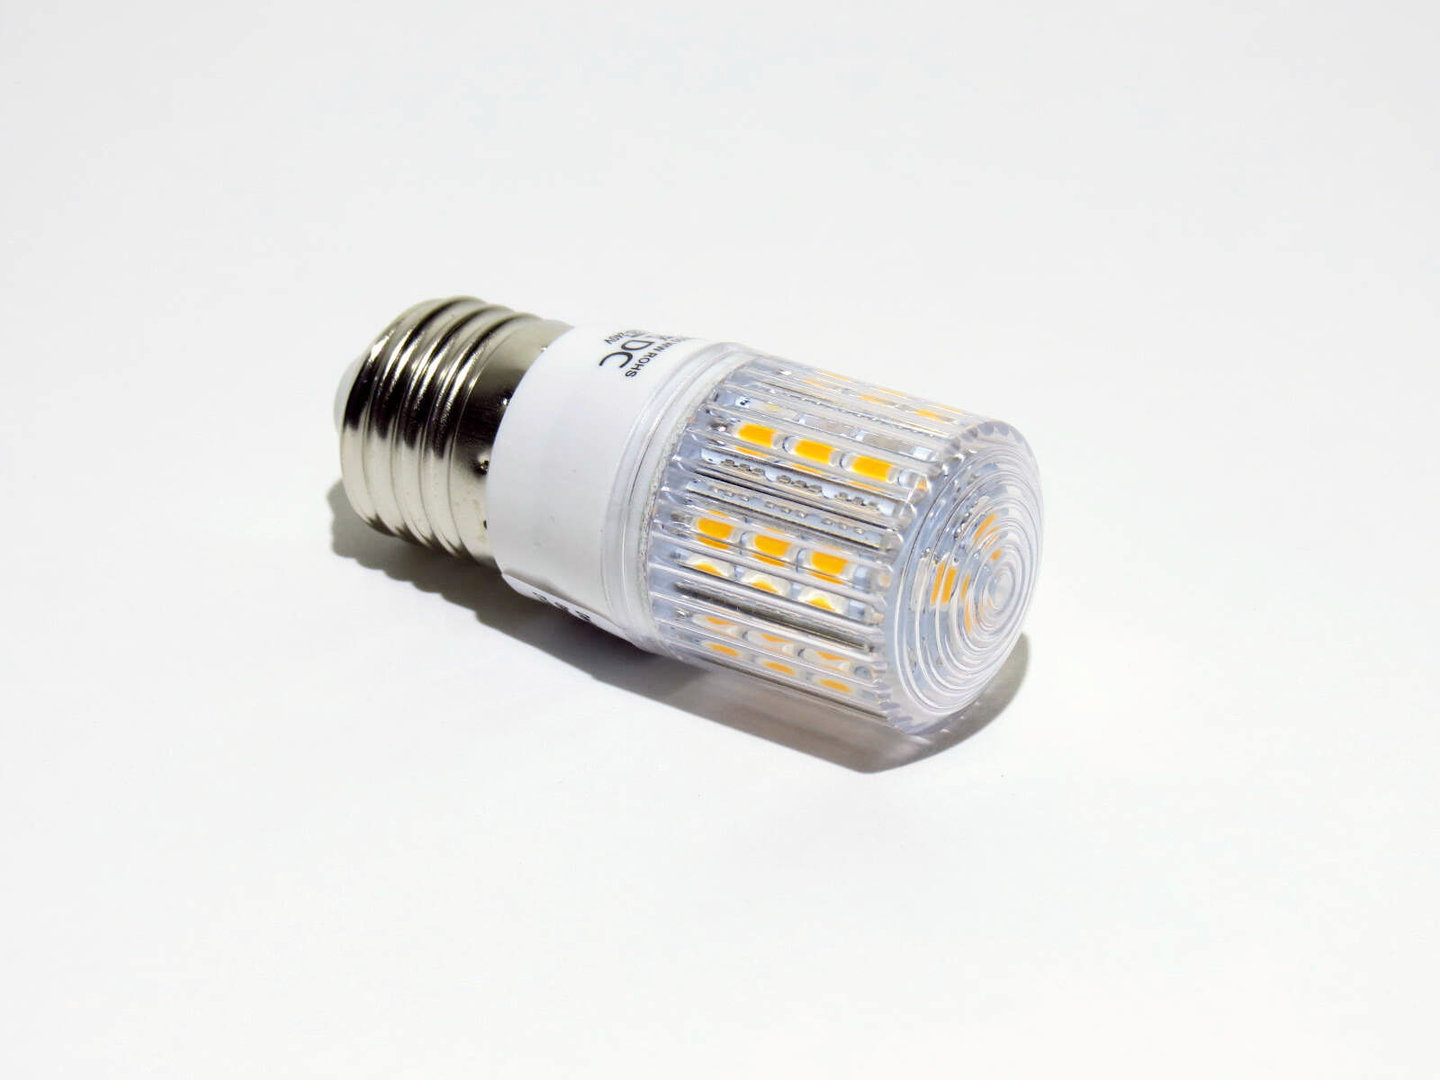 E27 24 LED SMD 10-30V warmweiß